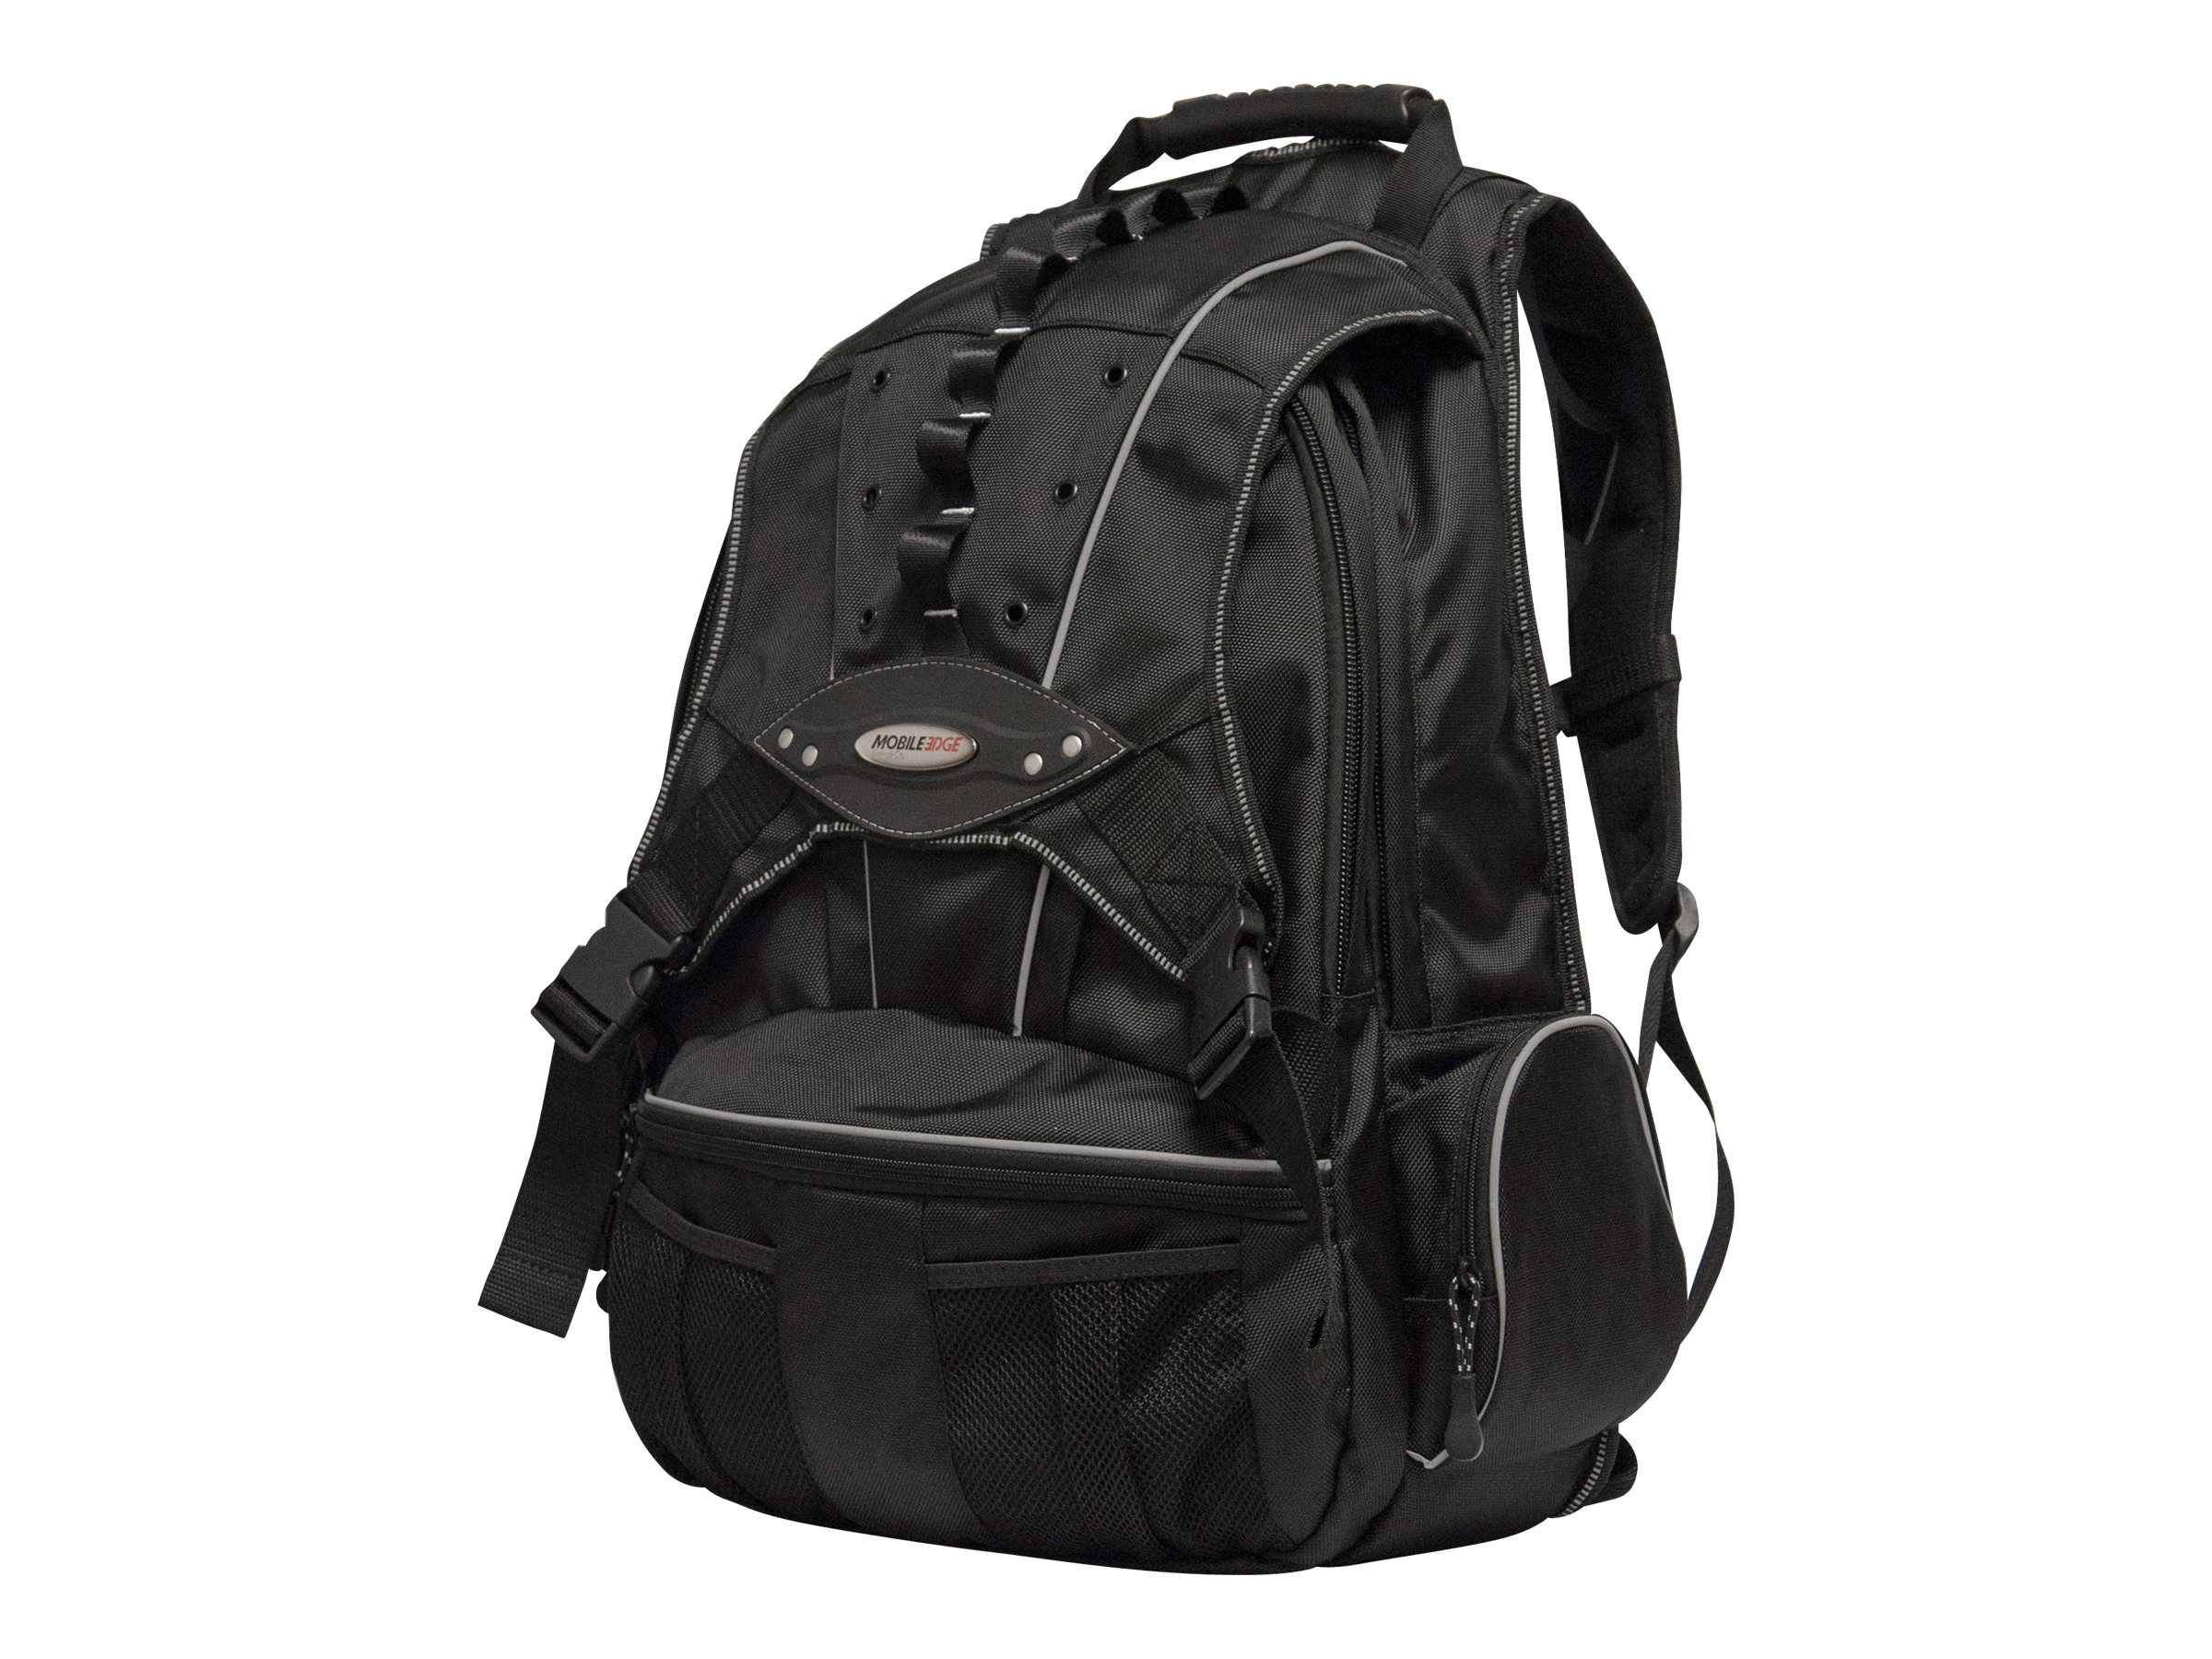 Mobile Edge Premium Backpack, Nylon, Charcoal Black, MEBPP1, 6226431, Carrying Cases - Notebook